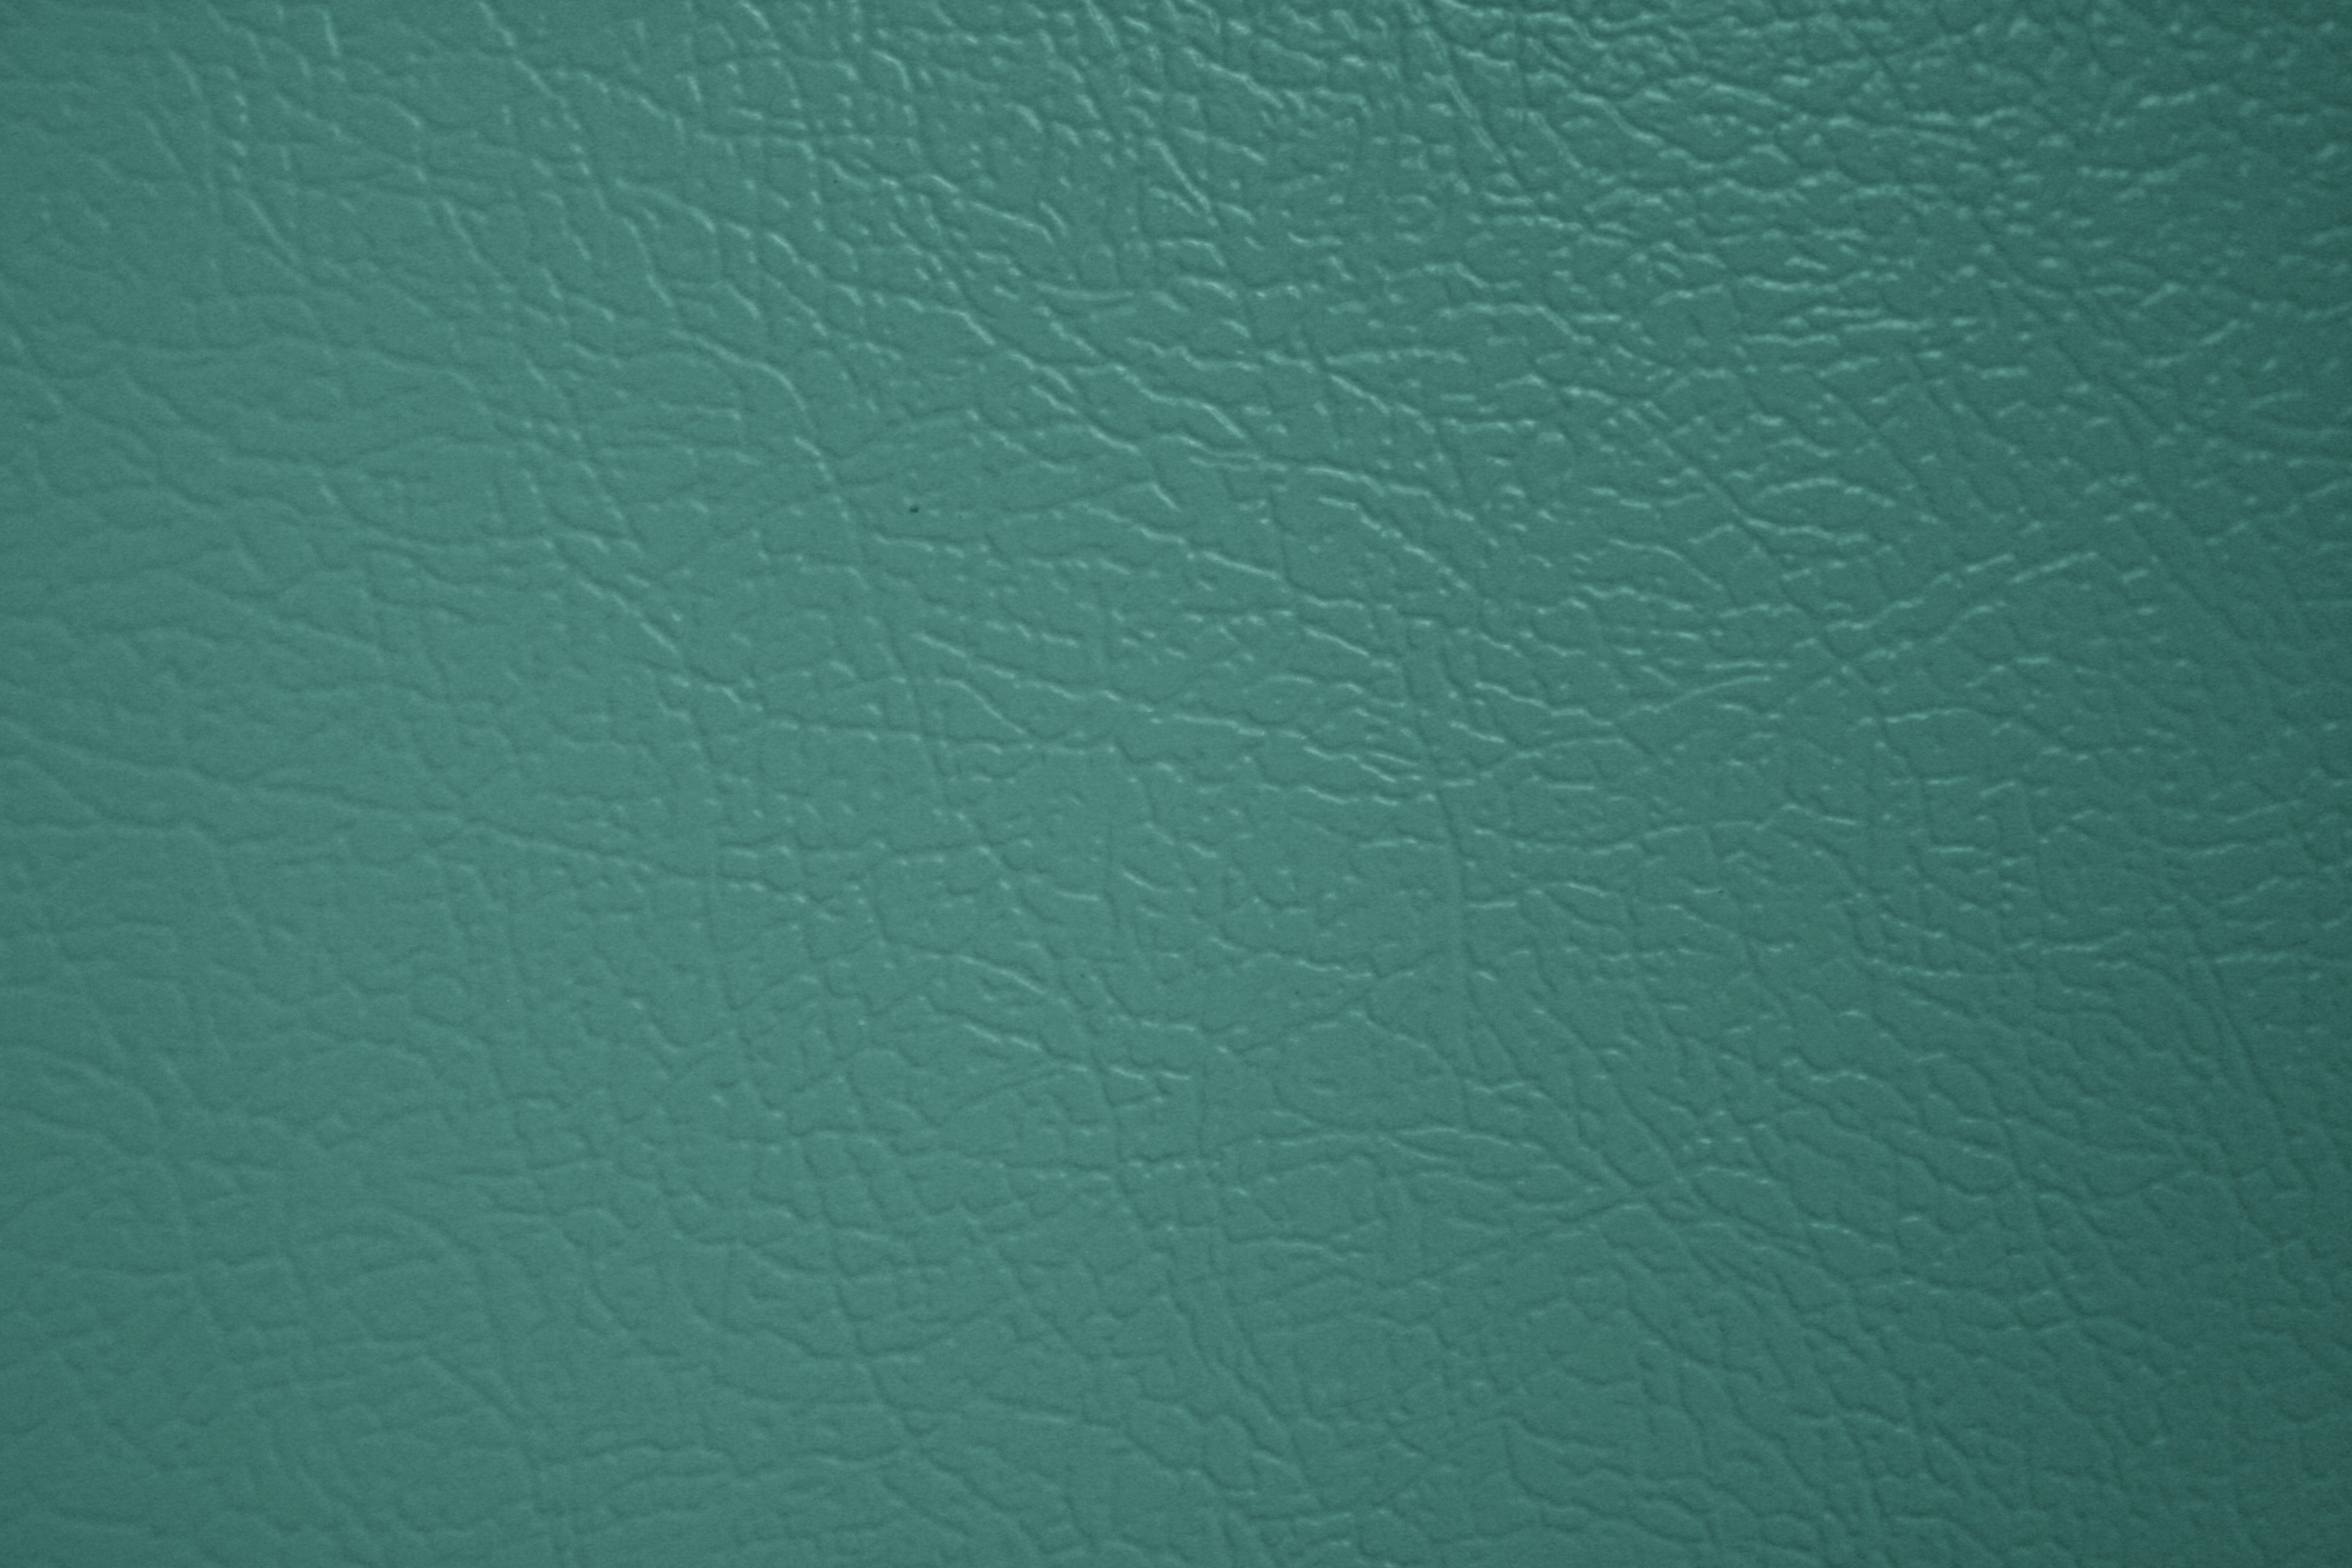 The Texture Of Teal And Turquoise: Teal Faux Leather Texture Picture